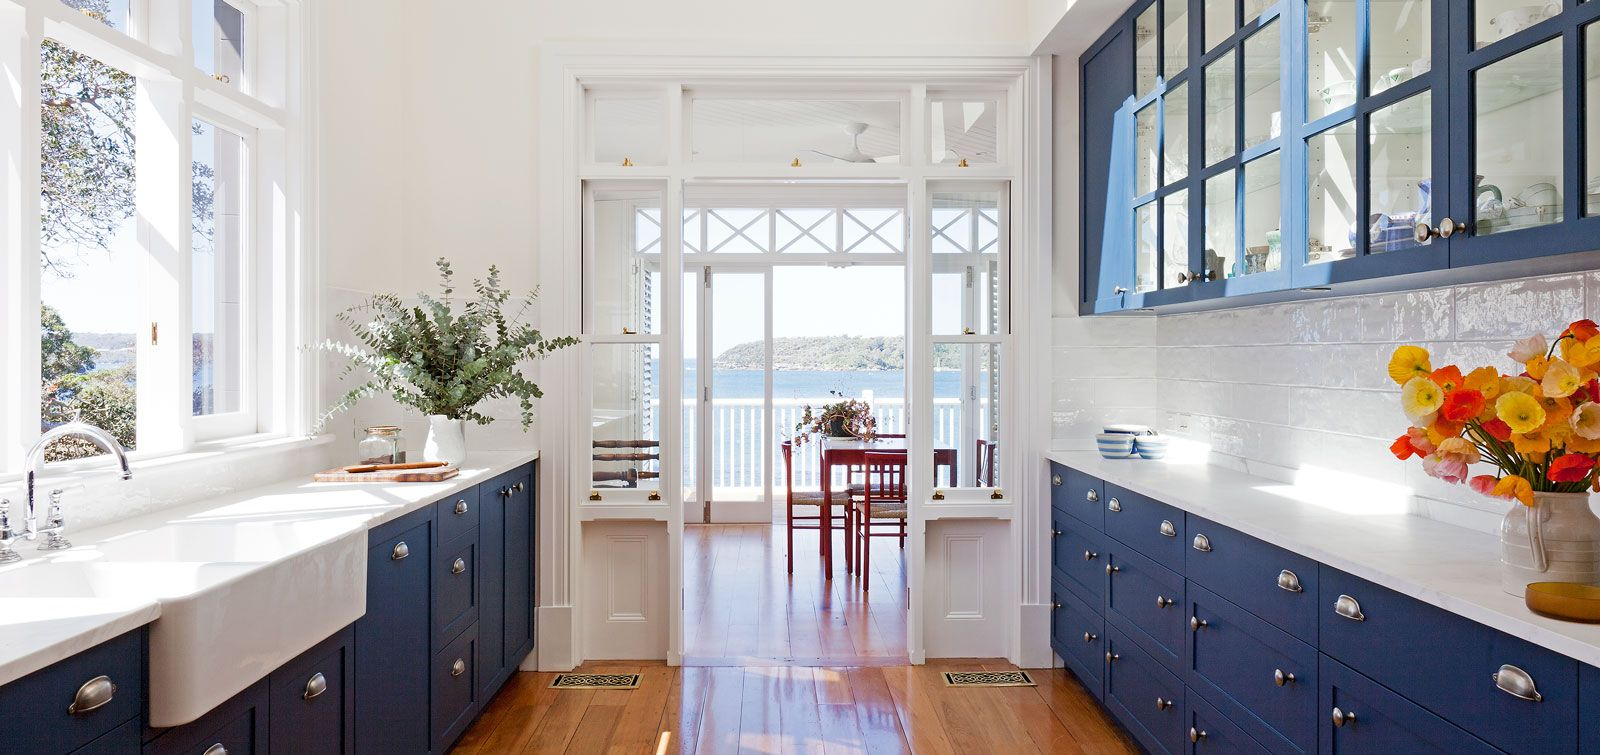 blue cabinets white counter beach view yes please house fantasy holiday house on kitchen cabinets blue id=96236